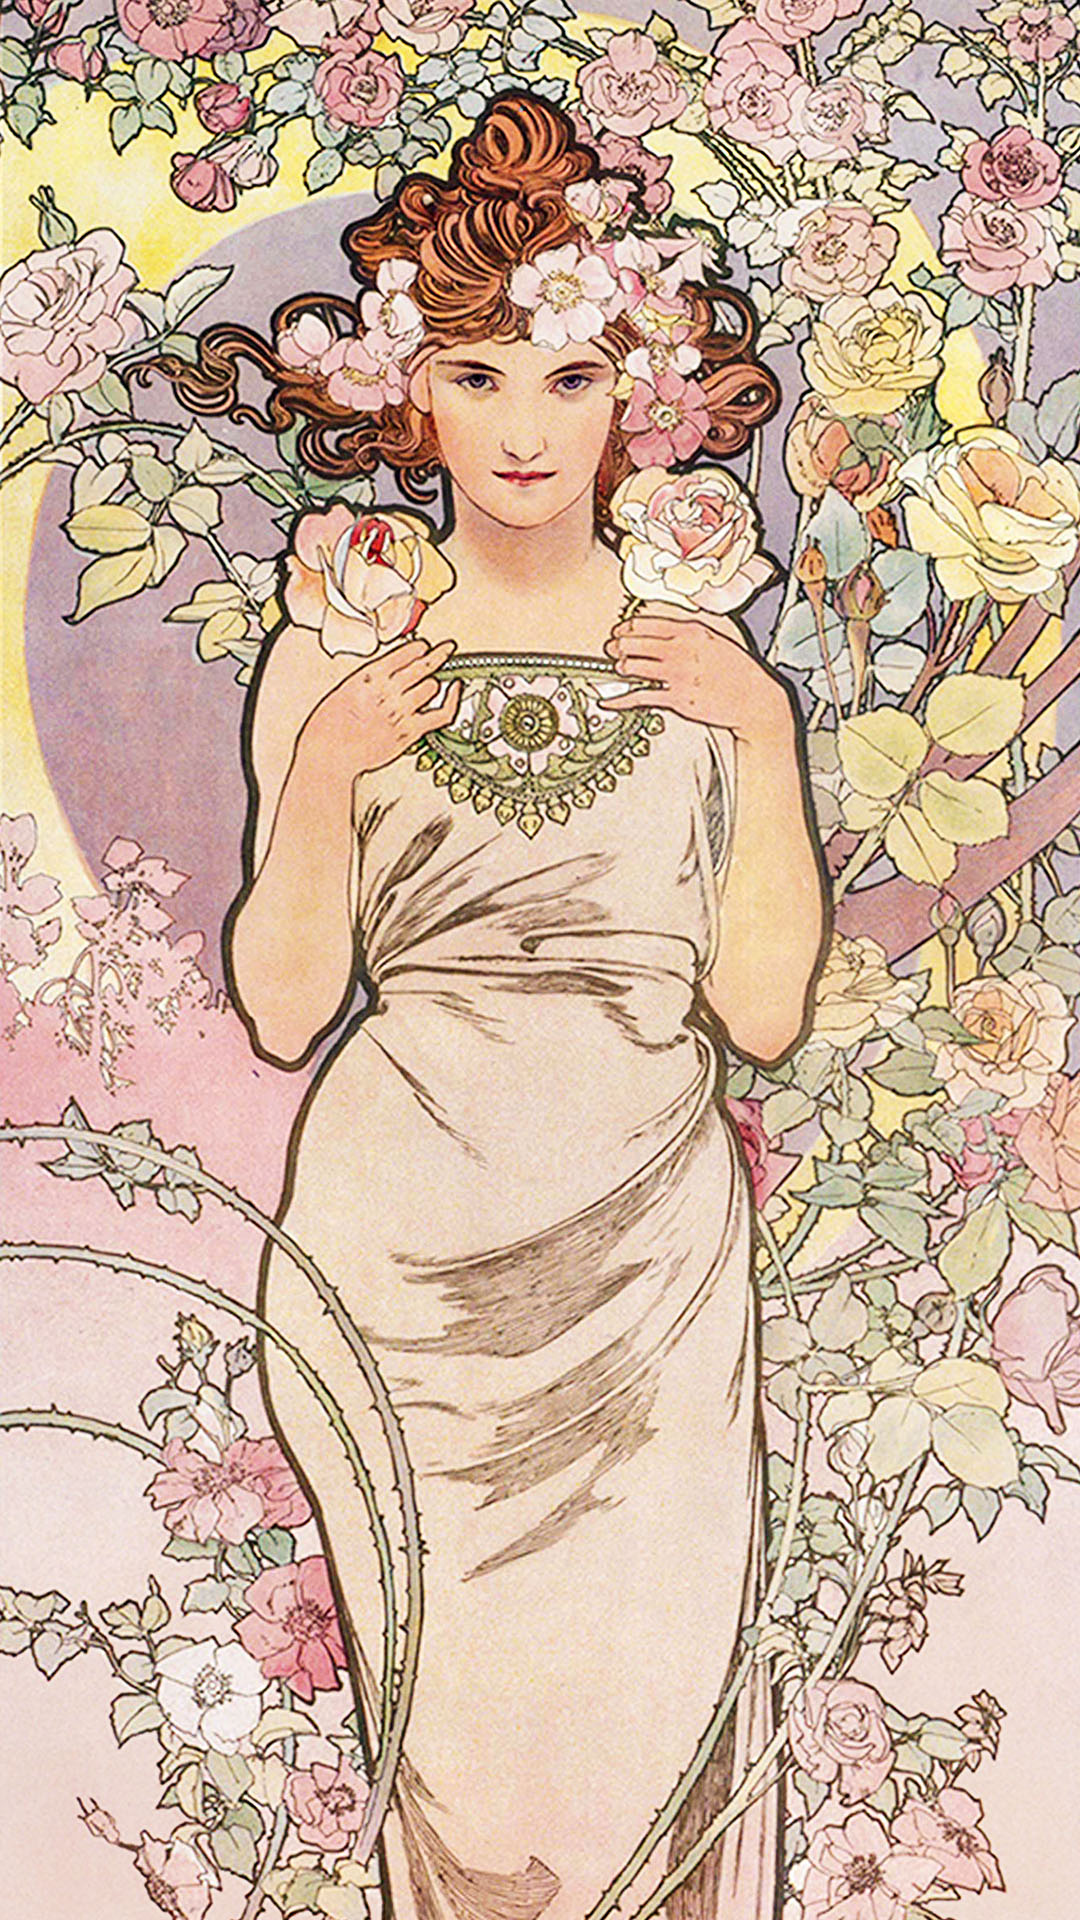 ミュシャ 四つの花 バラ Alfons Mucha - Four flowers rose 1080x1920